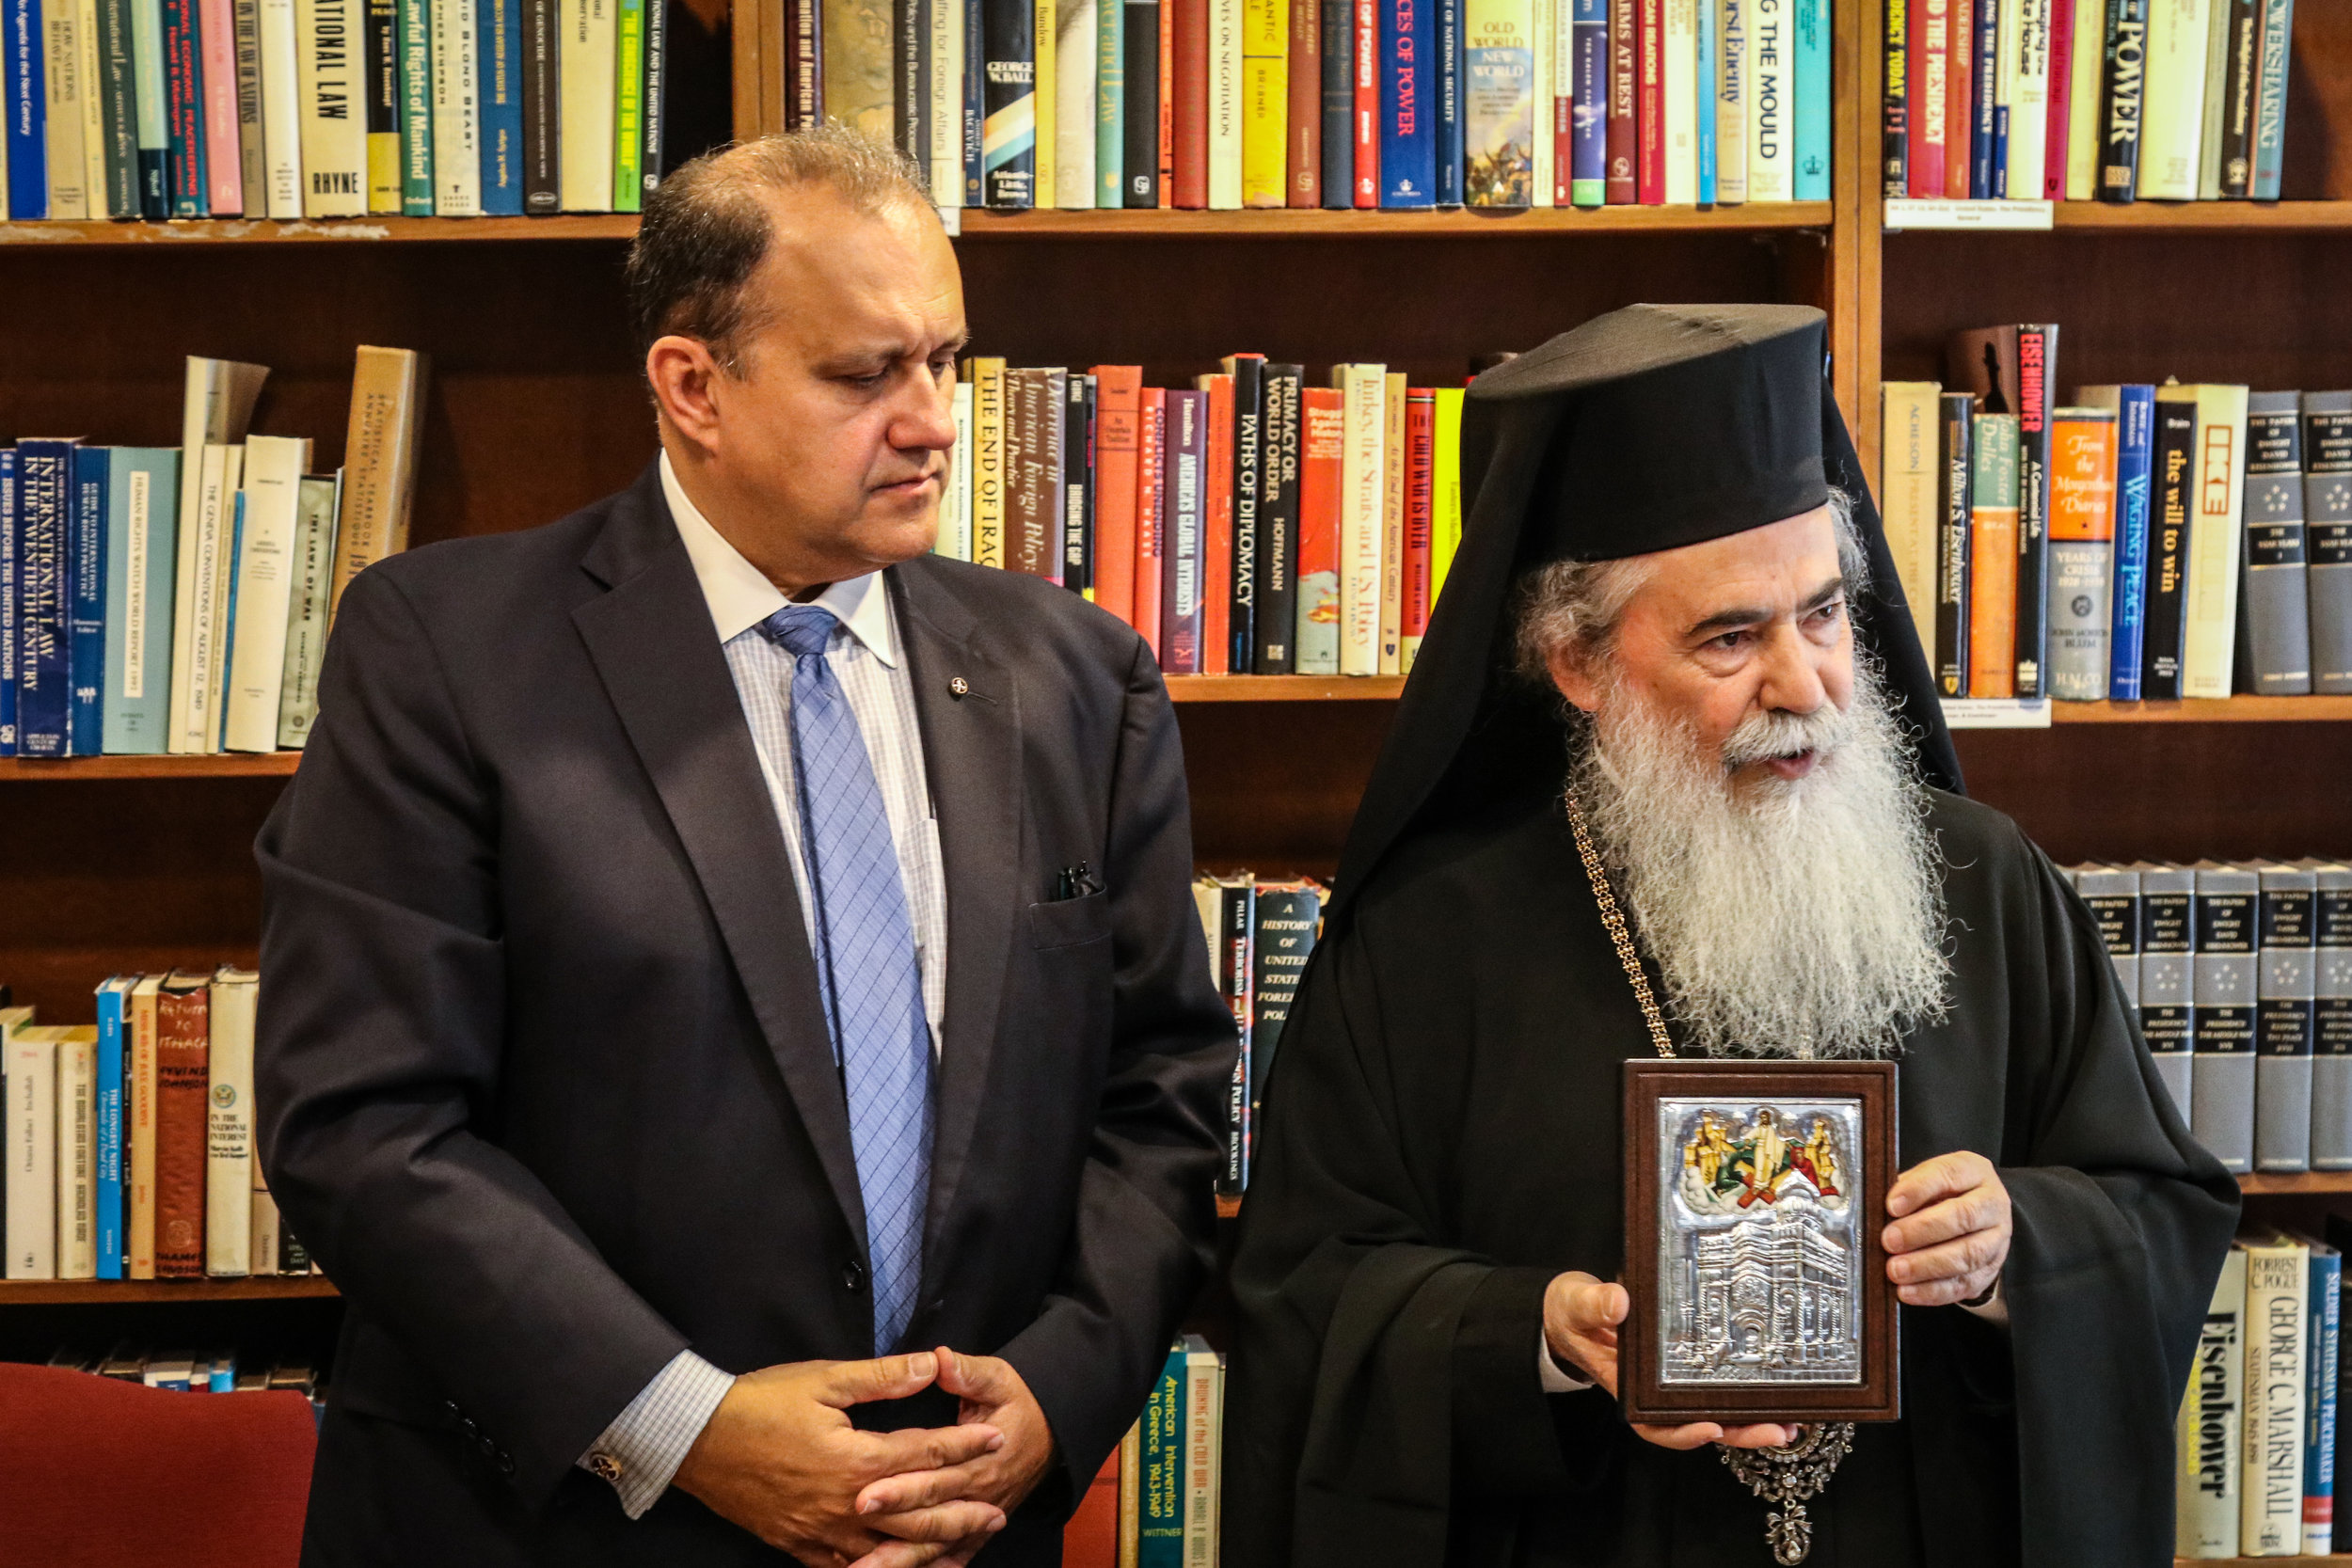 Patriarch Theophilos III presents Nick Larigakis with an icon of the Holy Sepulchre.